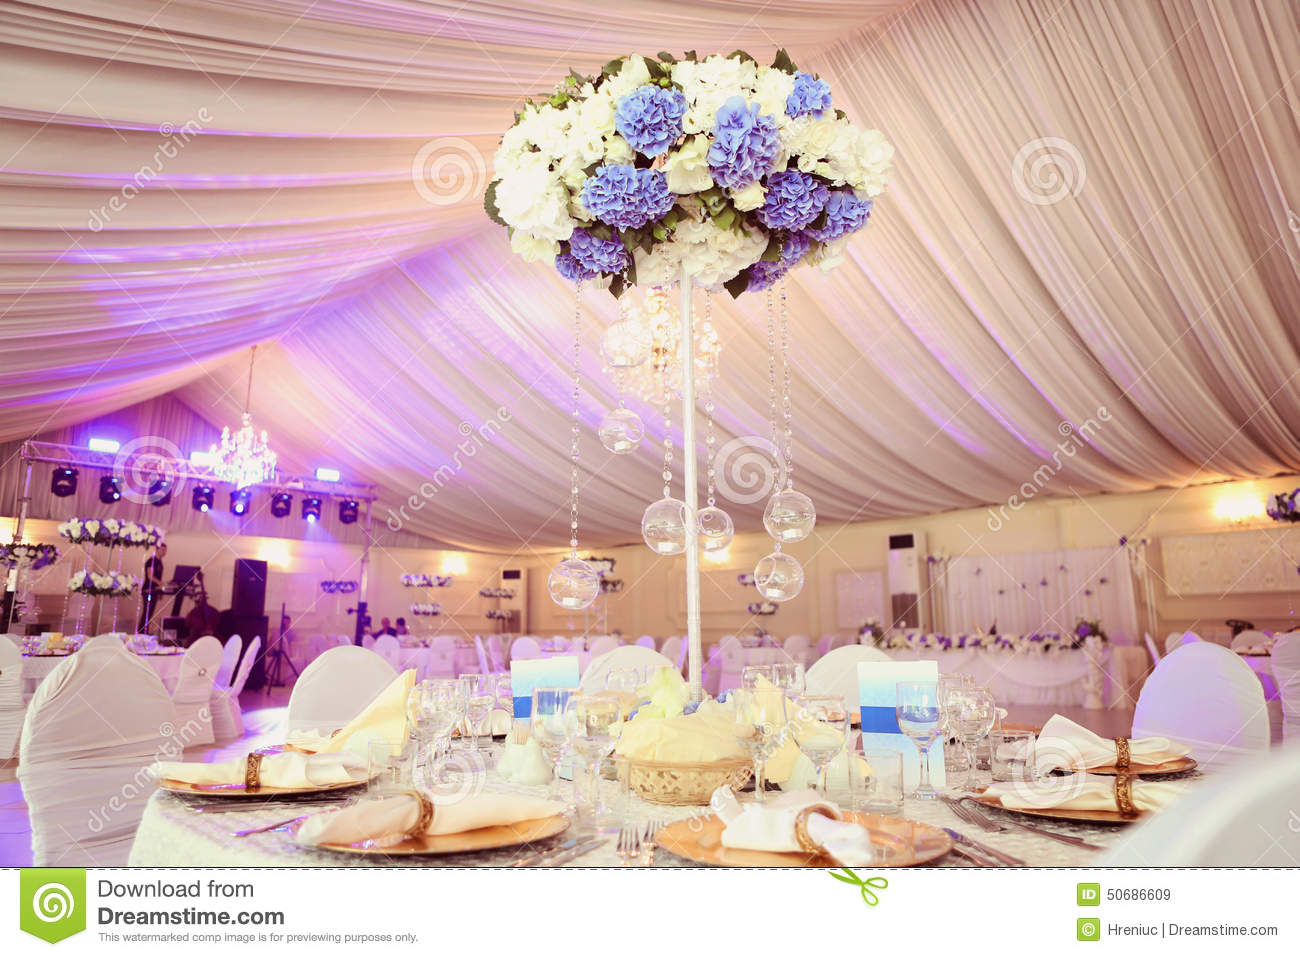 Wedding decoration flowers stock image image of dine 50686609 wedding decoration flowers dine luxury junglespirit Image collections